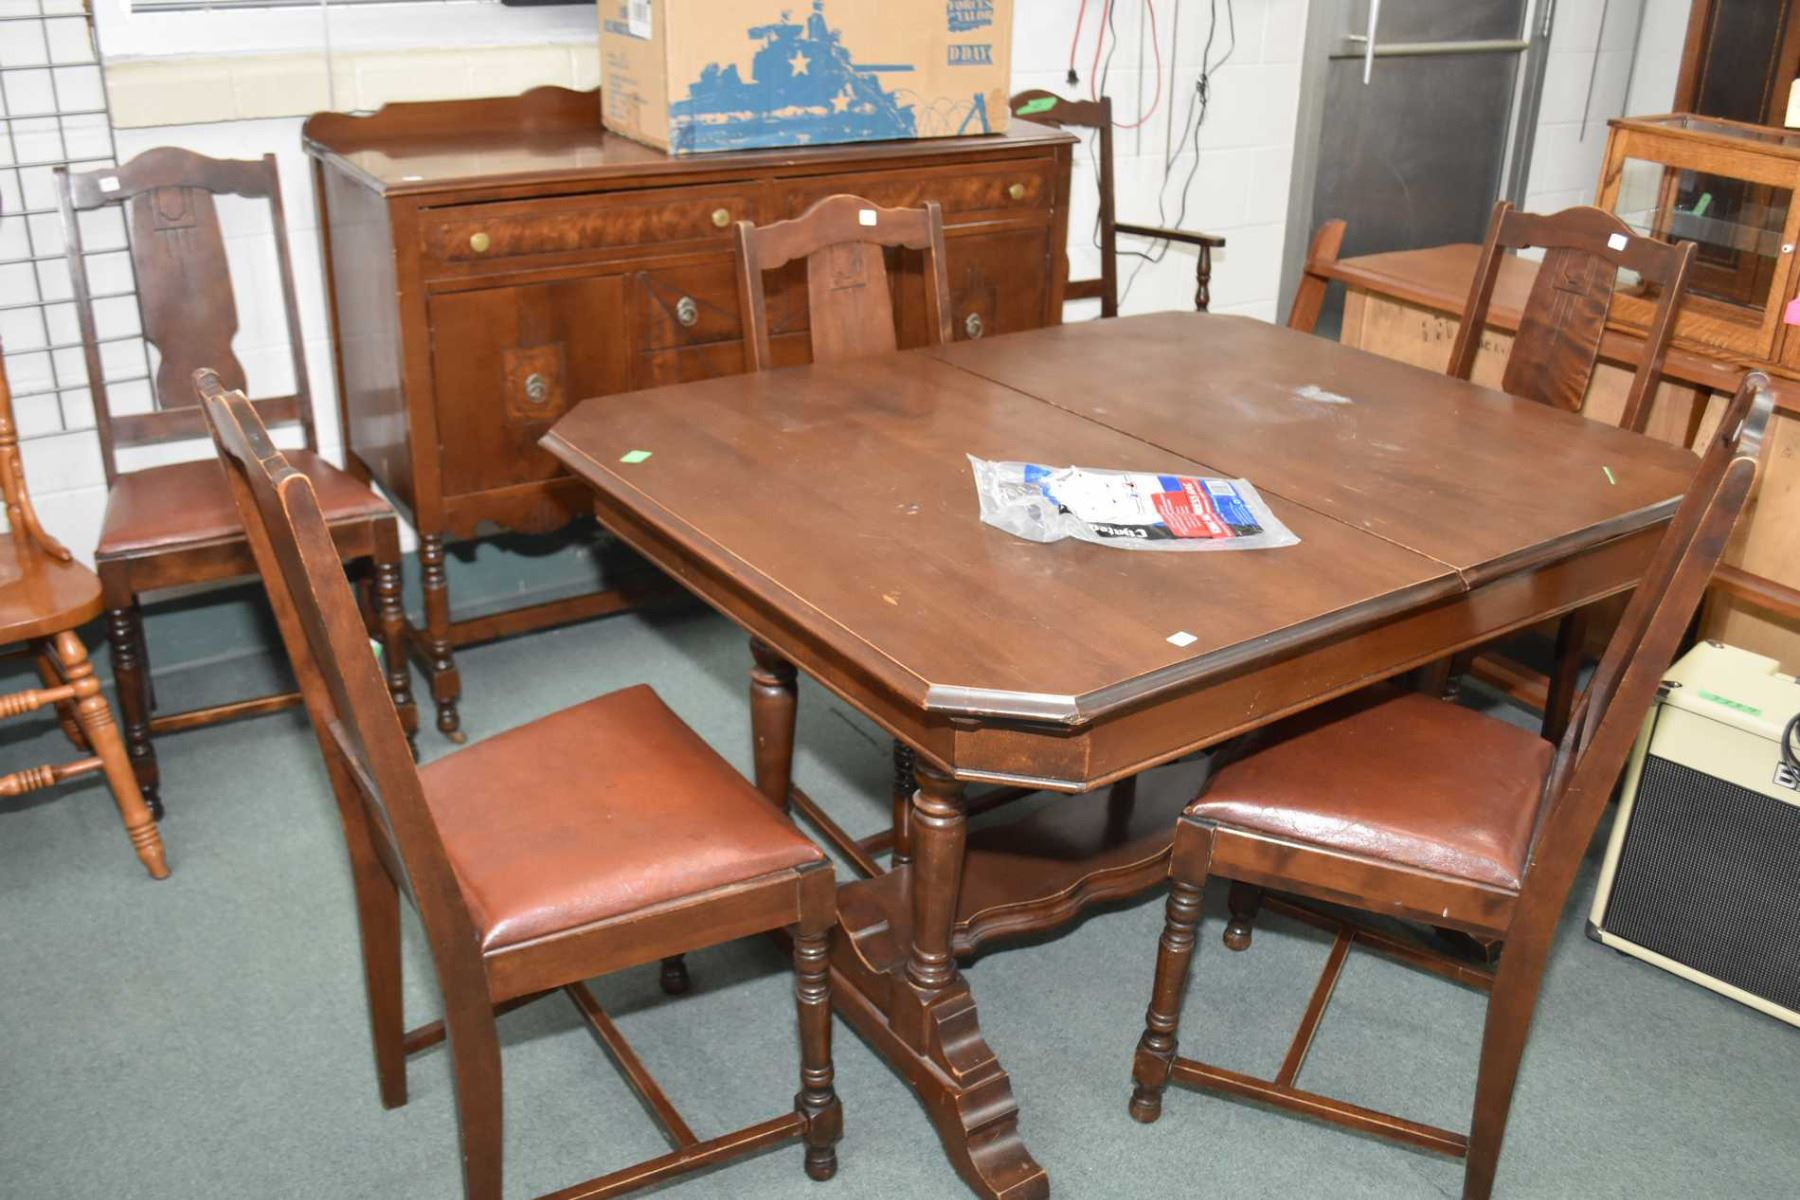 Depression era walnut dining room suite including table with ...